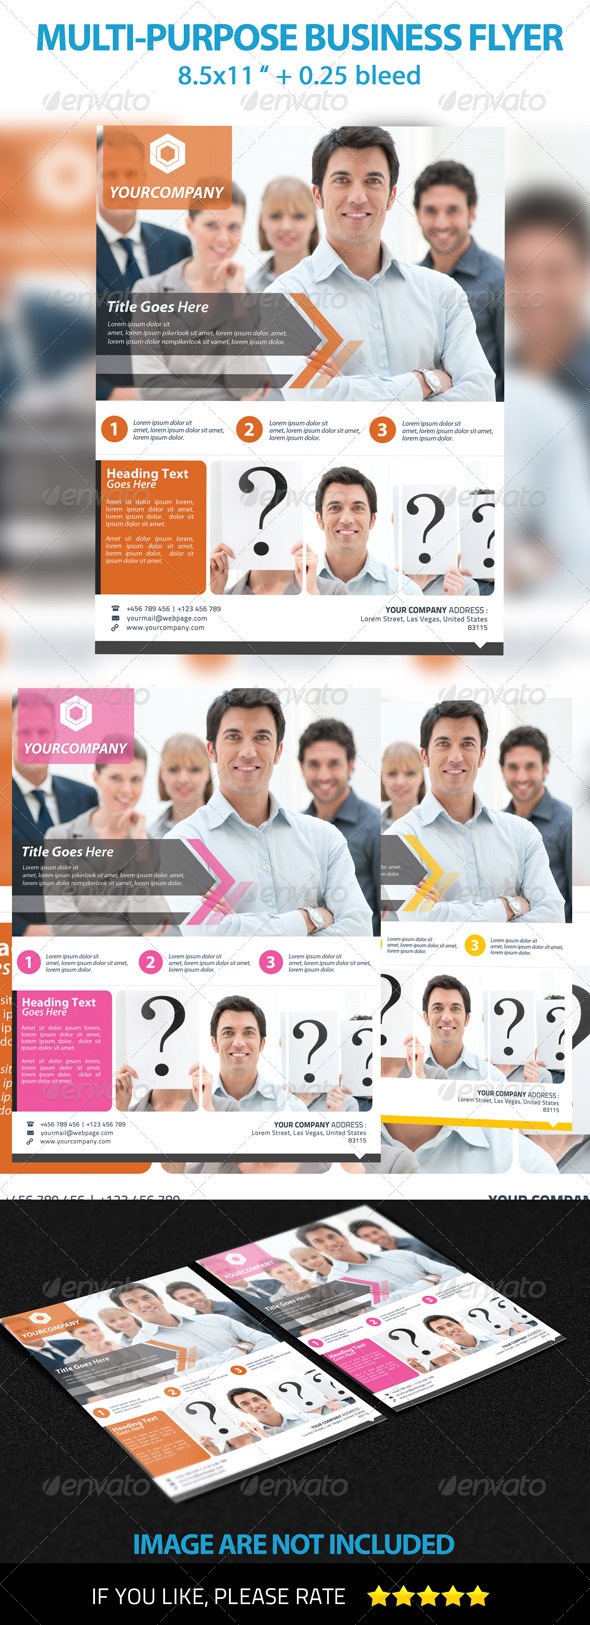 Multi-Purpose Business Flyer Template 2 - Commerce Flyers